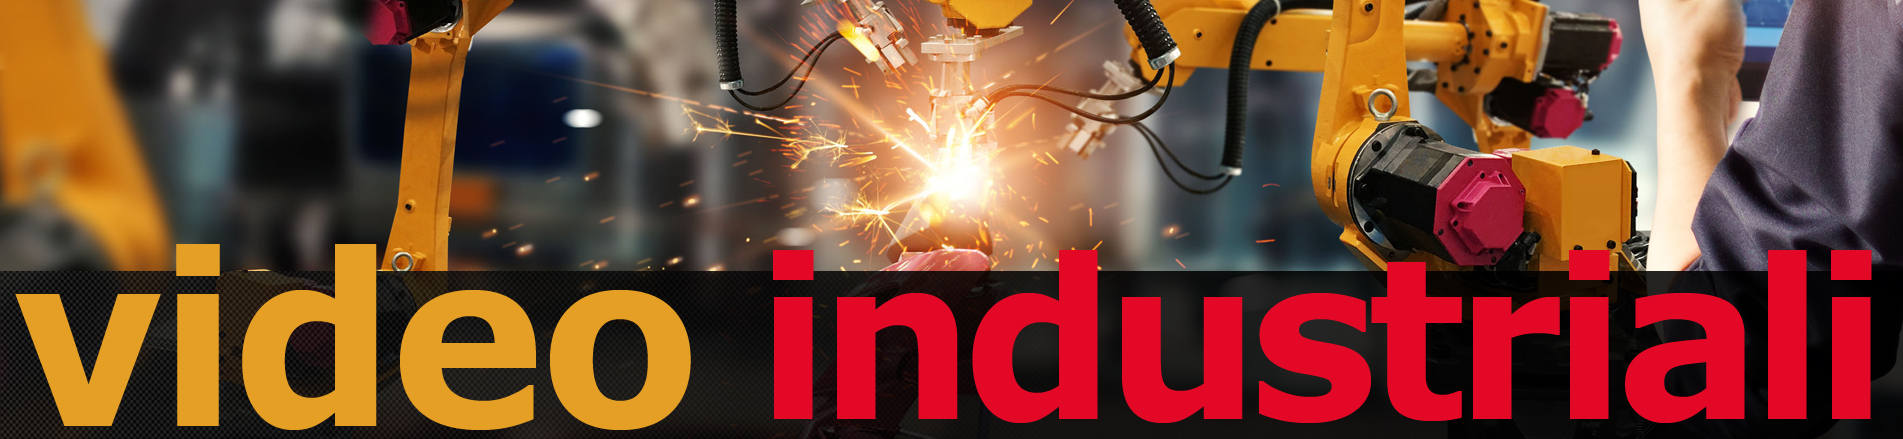 video-industriali